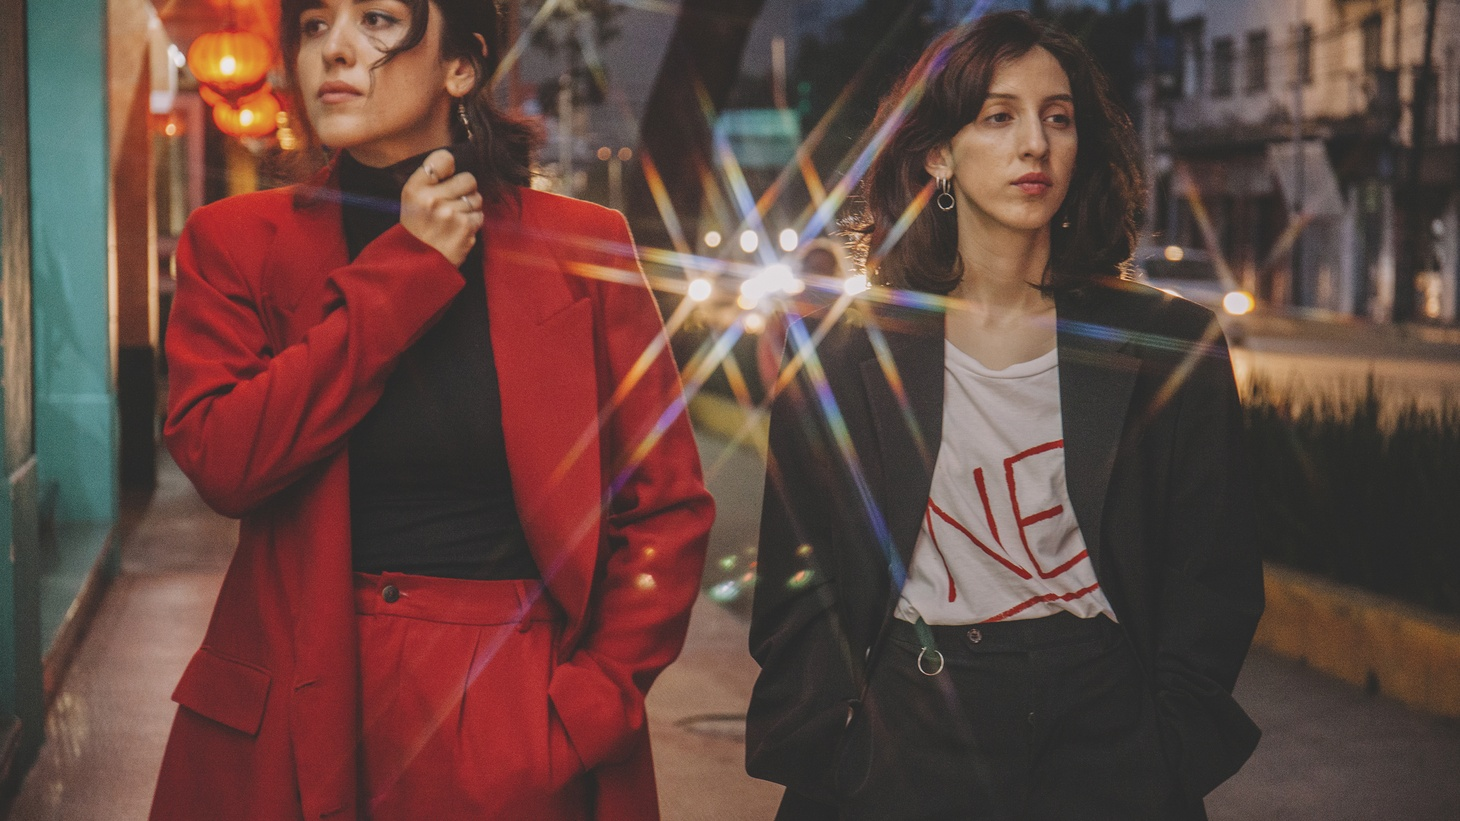 Based in Tijuana, Mint Field features lead singer/guitarist Estrella Sanchez -- an ex-professional bowler -- and childhood friend Amor Amezcua, a self-declared synth-nerd and drummer.